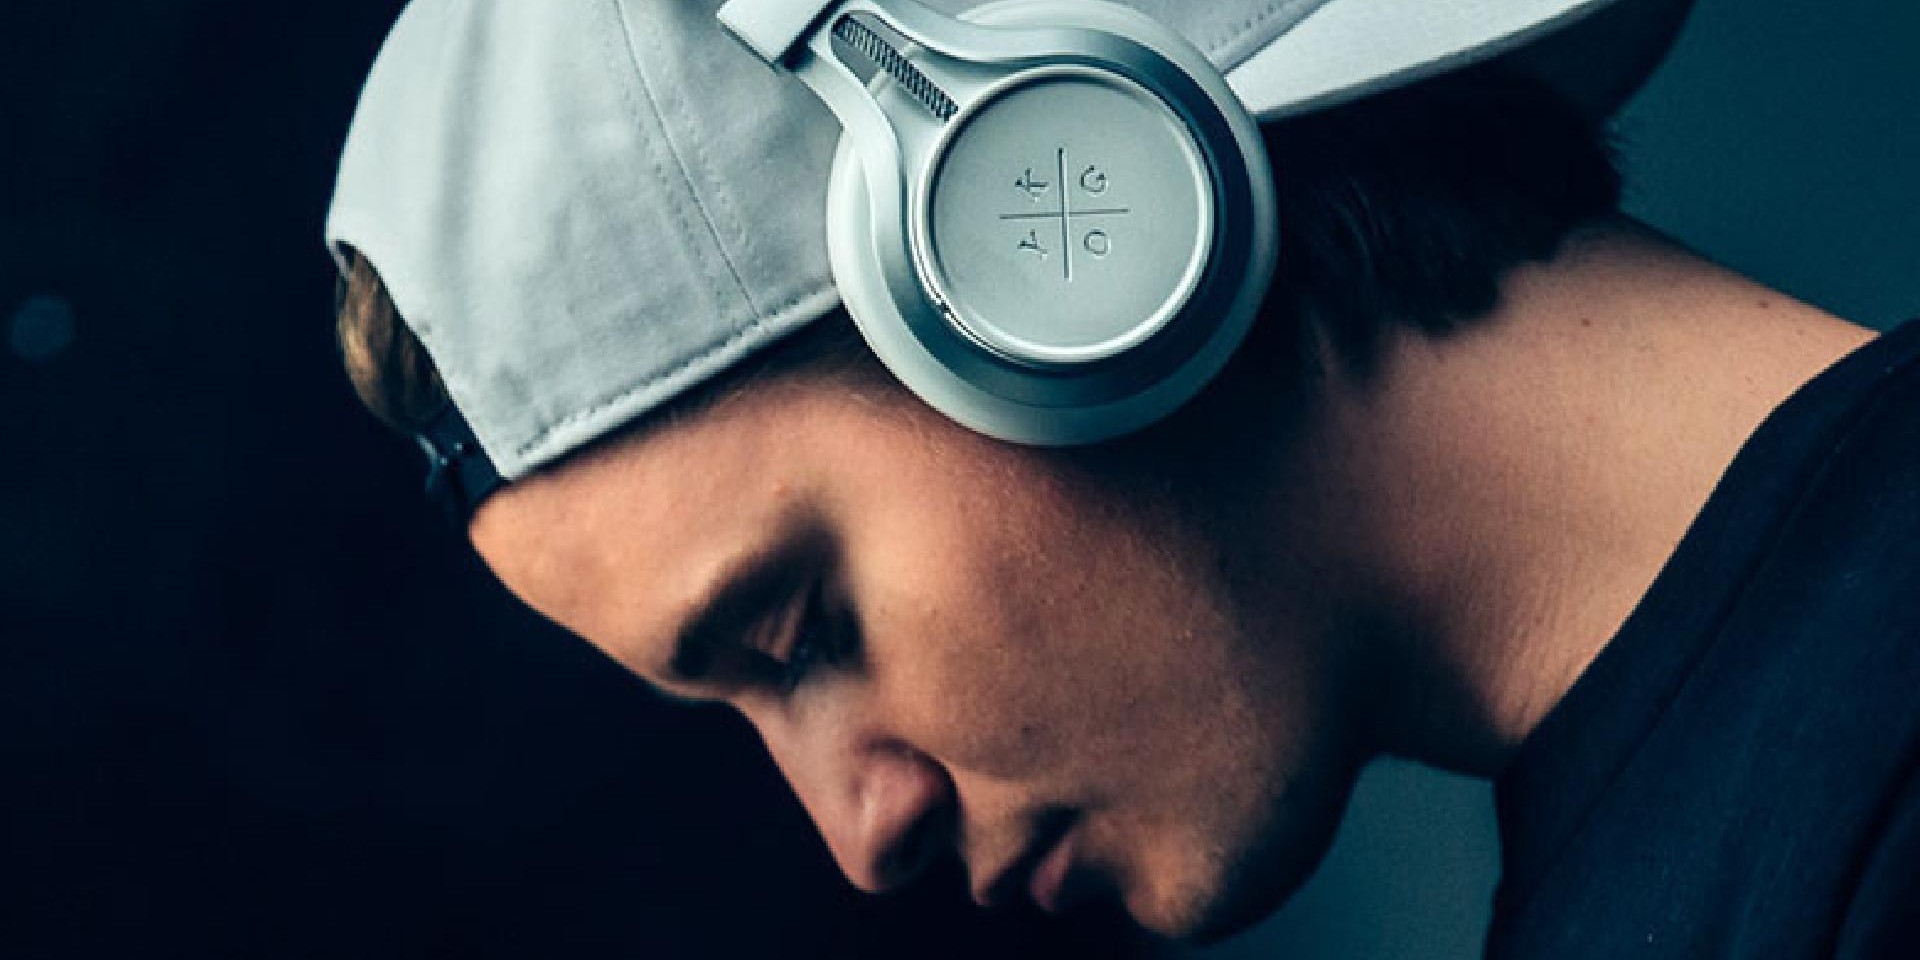 Kygo is bringing the Kids In Love tour to Manila